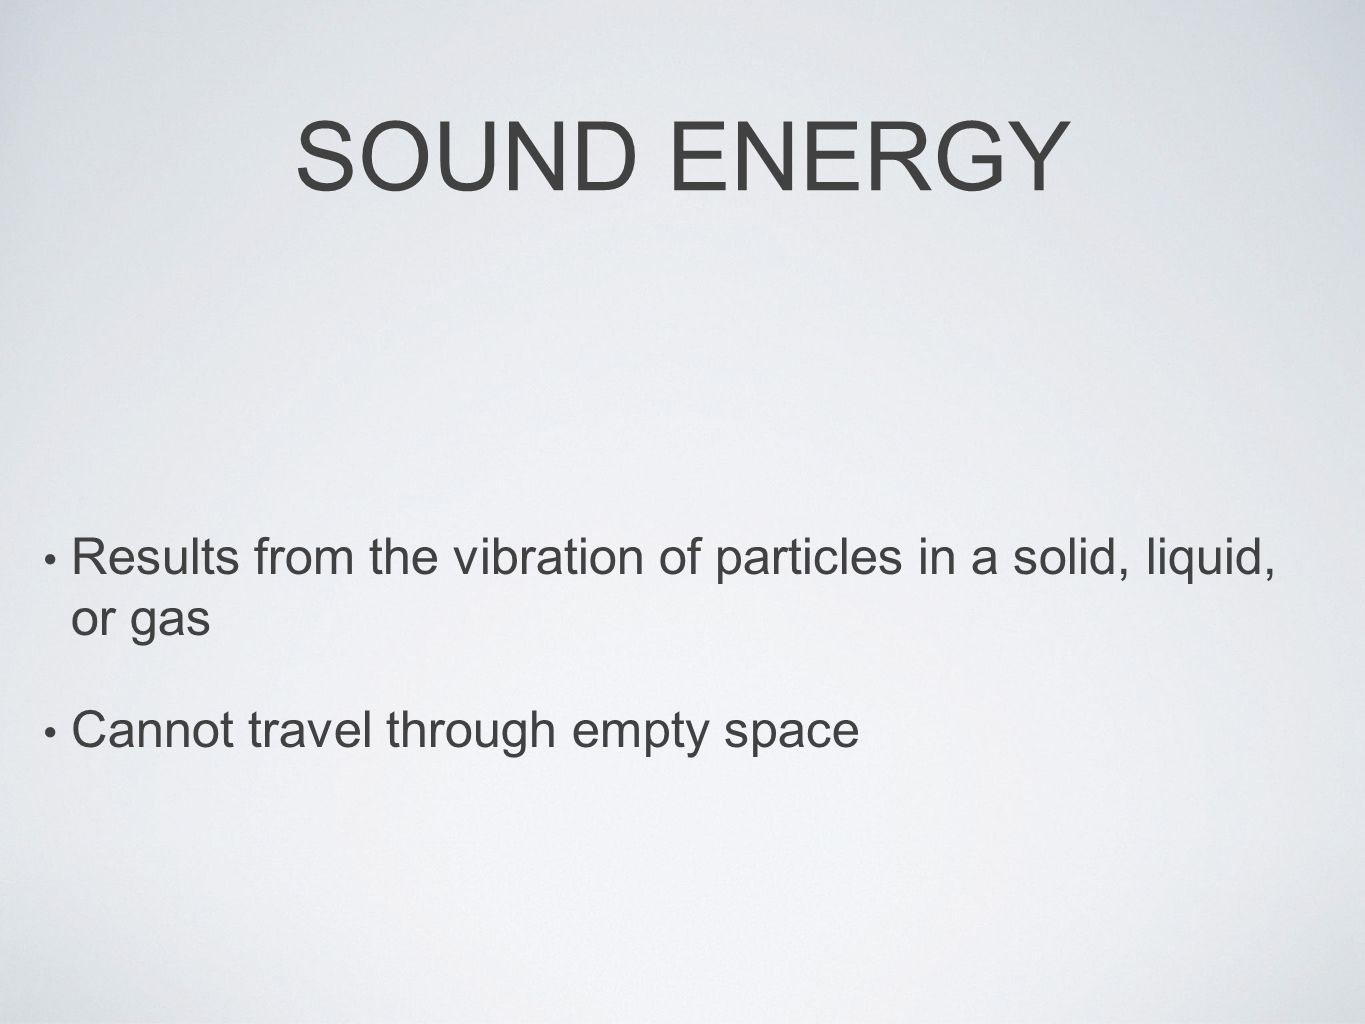 SOUND ENERGY Results from the vibration of particles in a solid, liquid, or gas Cannot travel through empty space